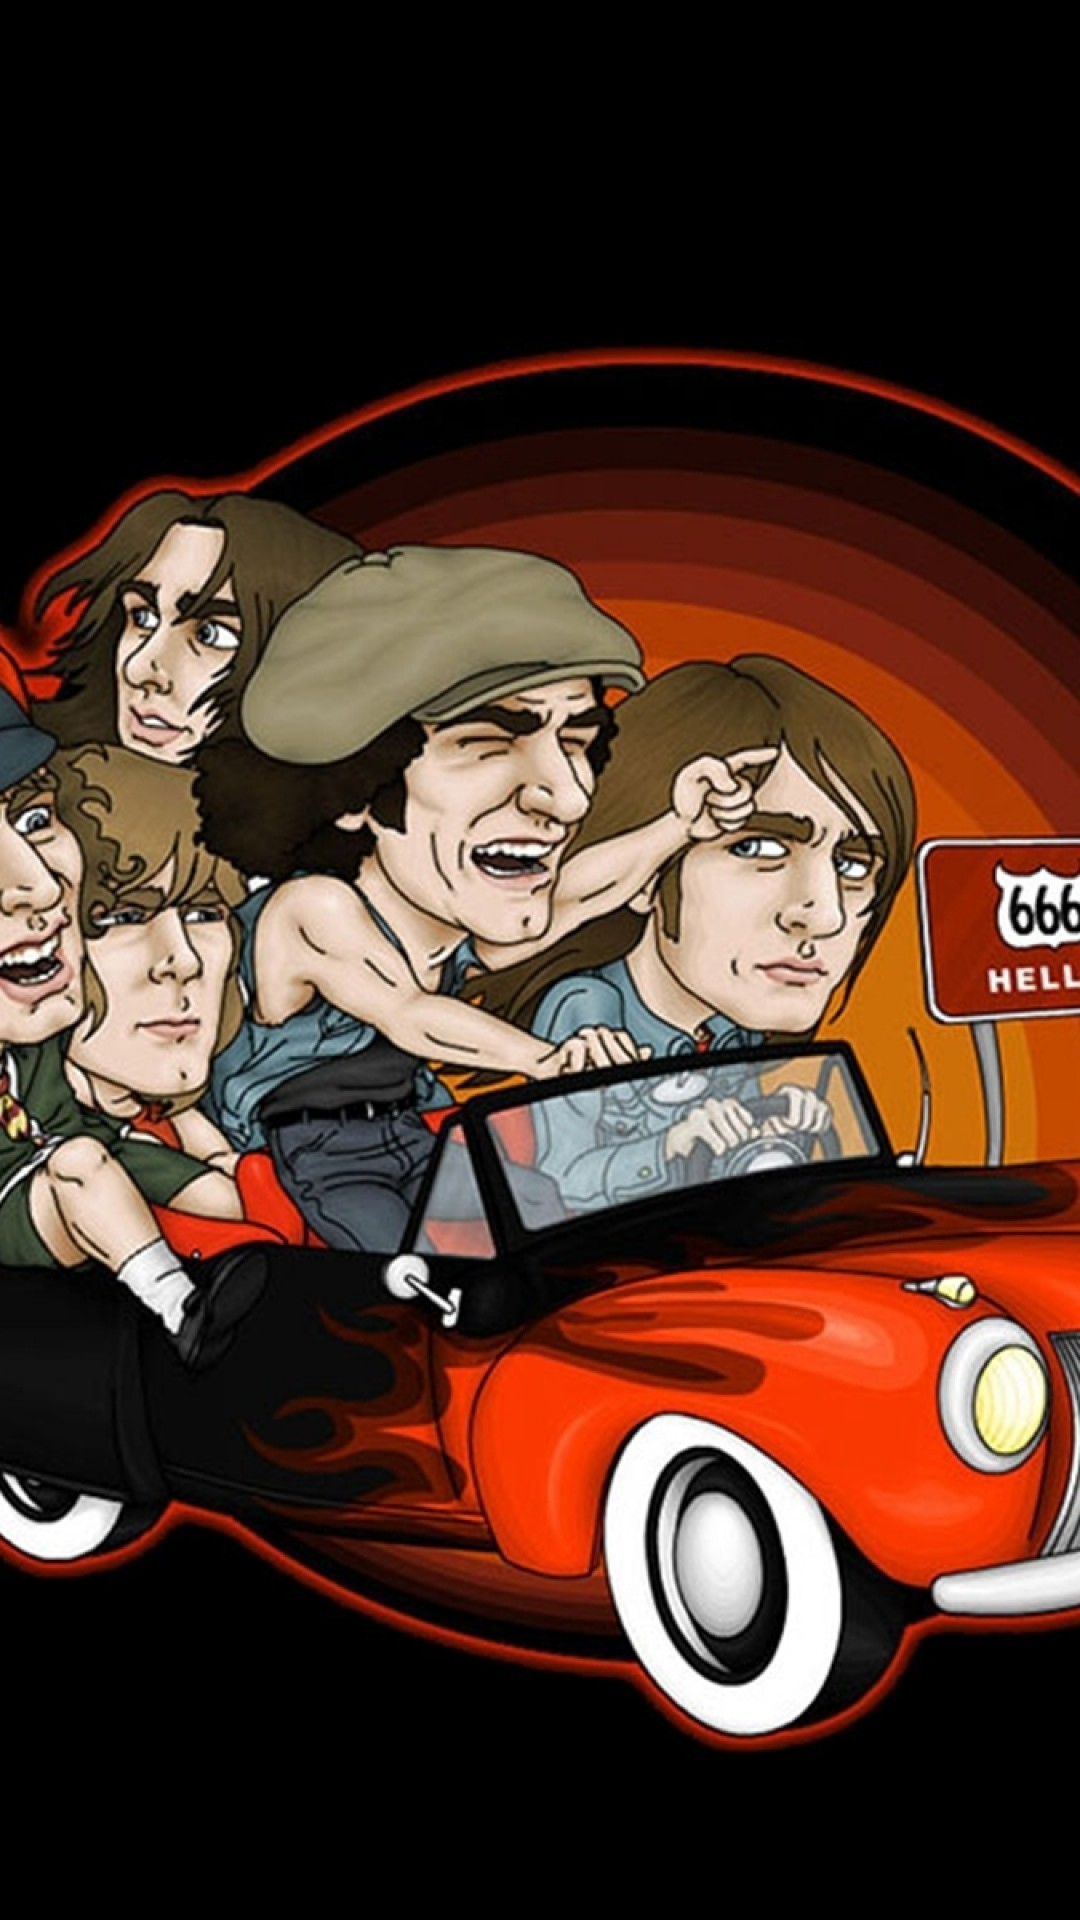 1080x1920 Preview wallpaper acdc, picture, car, direction, sign